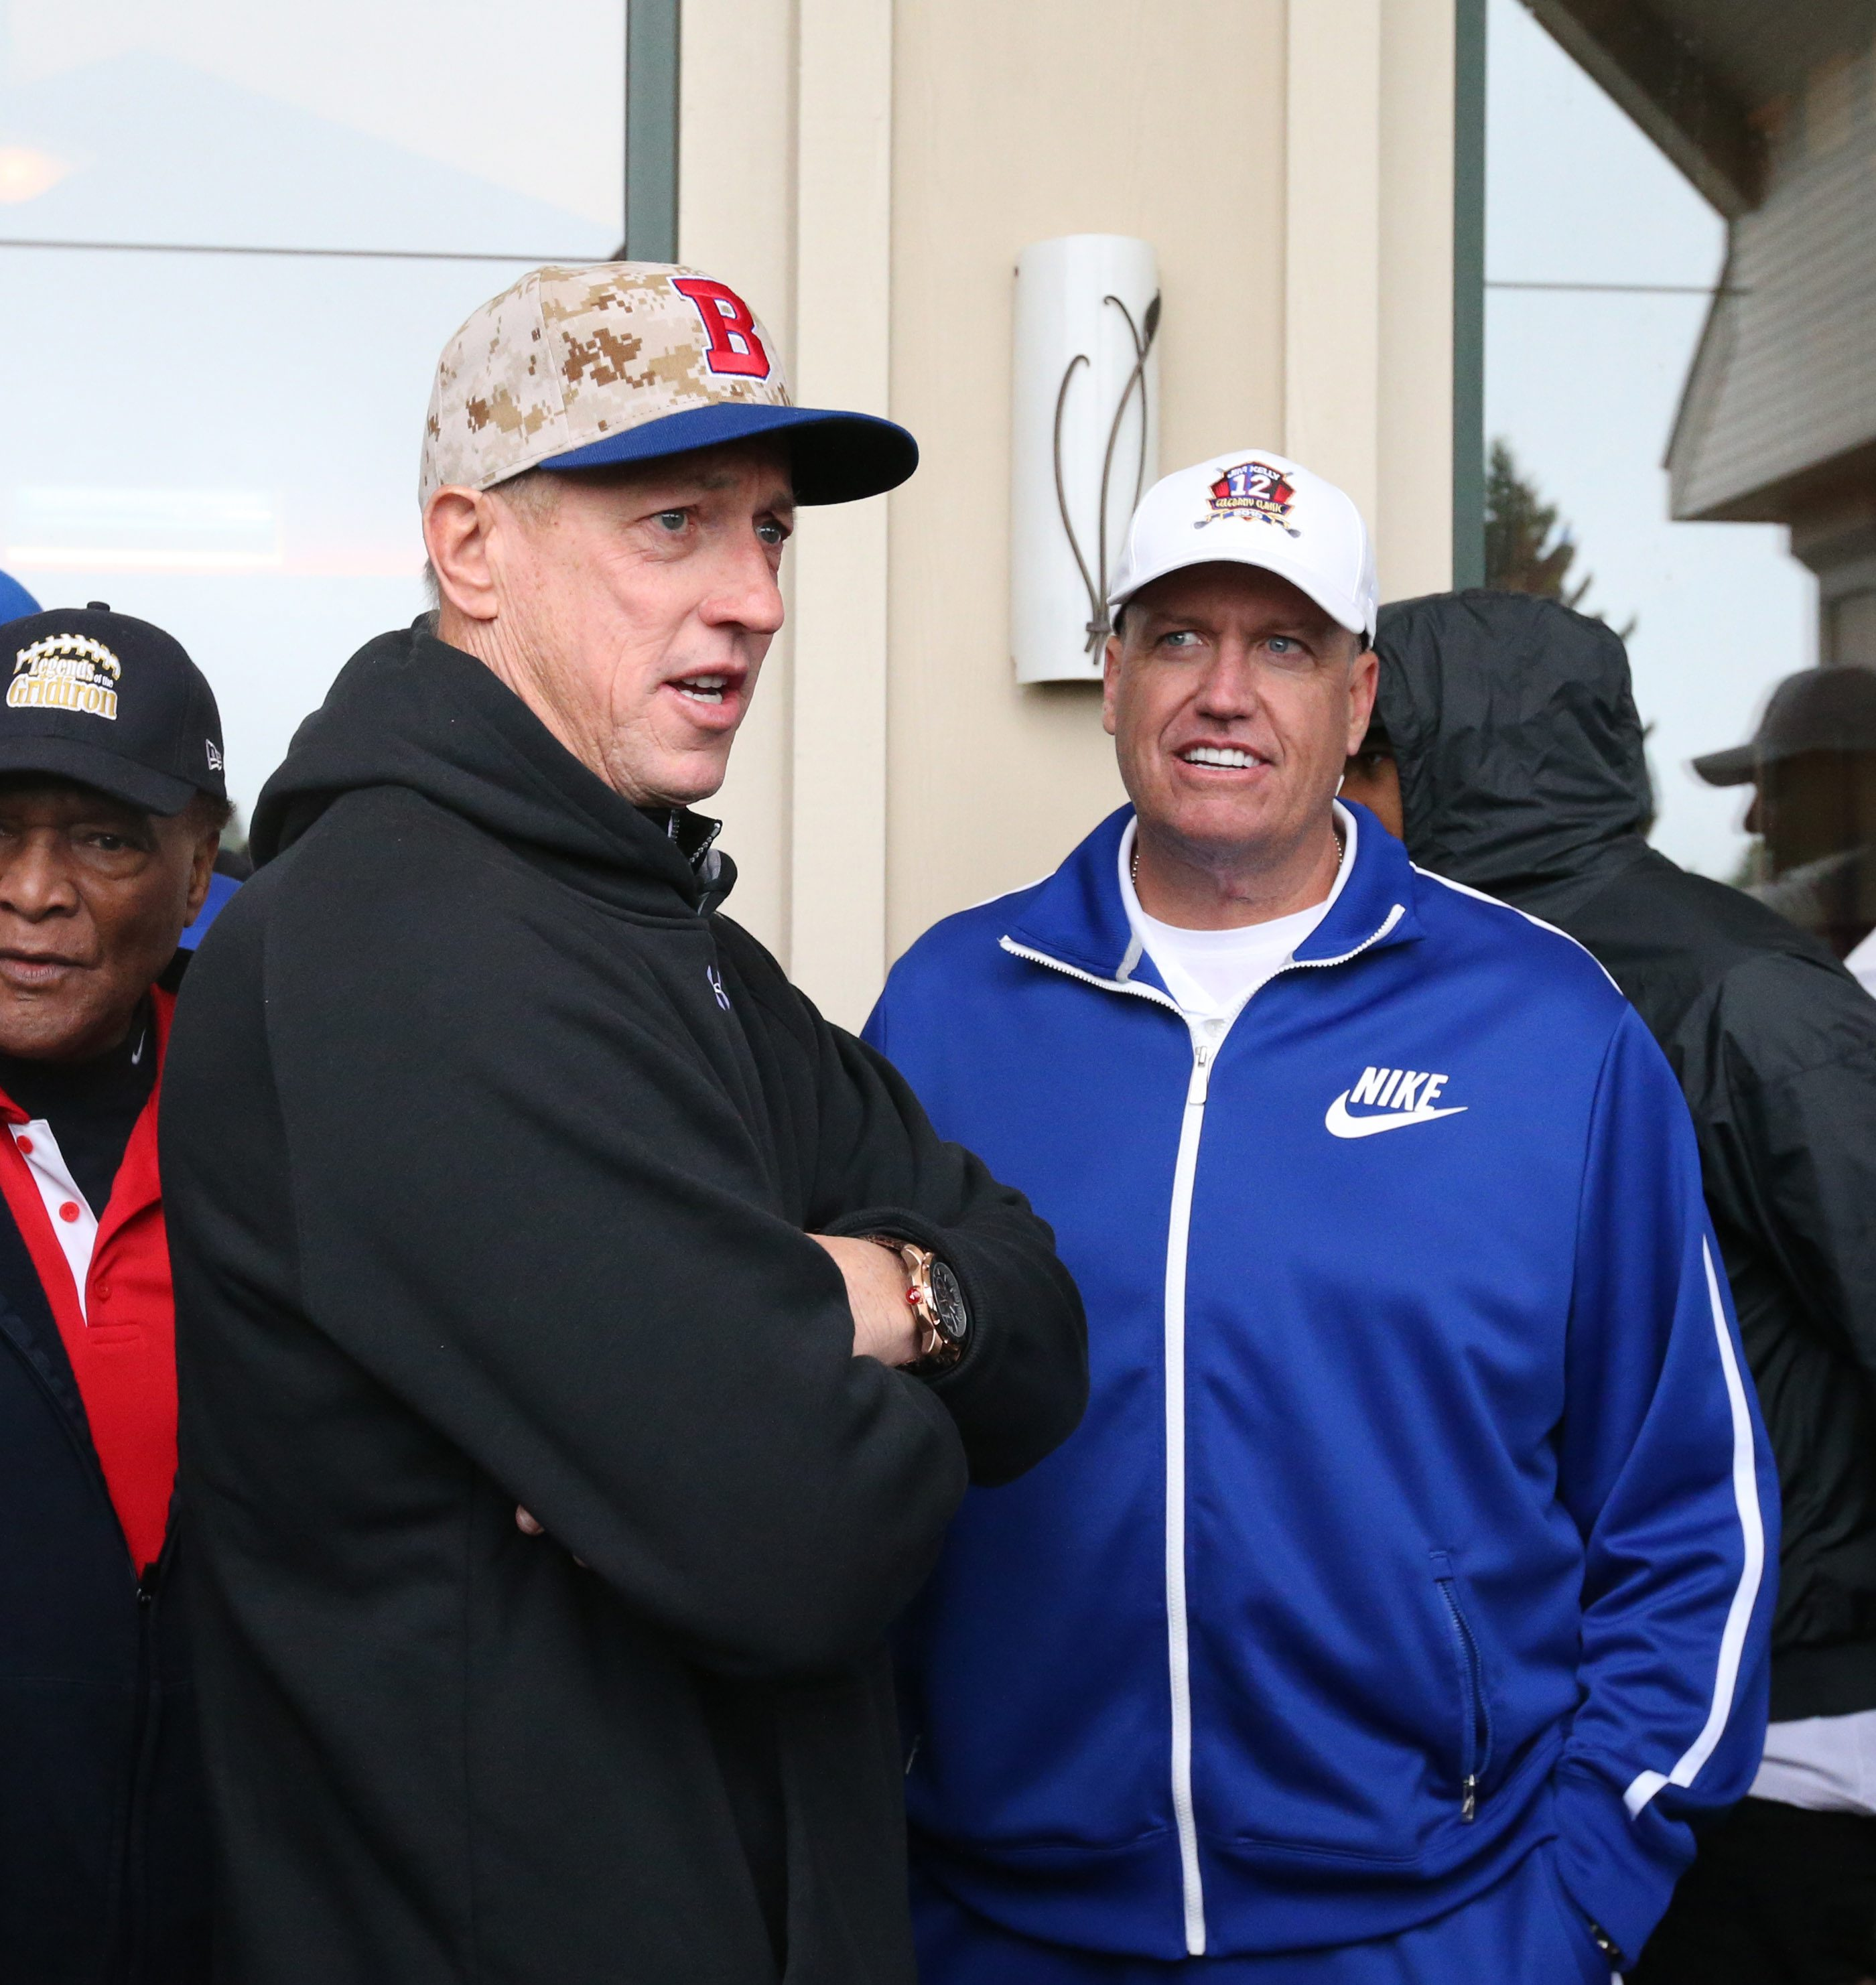 Jim Kelly talks to  Rex Ryan and other players at his own Jim Kelly's 29th Celebrity Classic golf tournament at Terry Hills Golf Course in Batavia,NY on Monday, June 1, 2015.  (James P. McCoy/ Buffalo News)